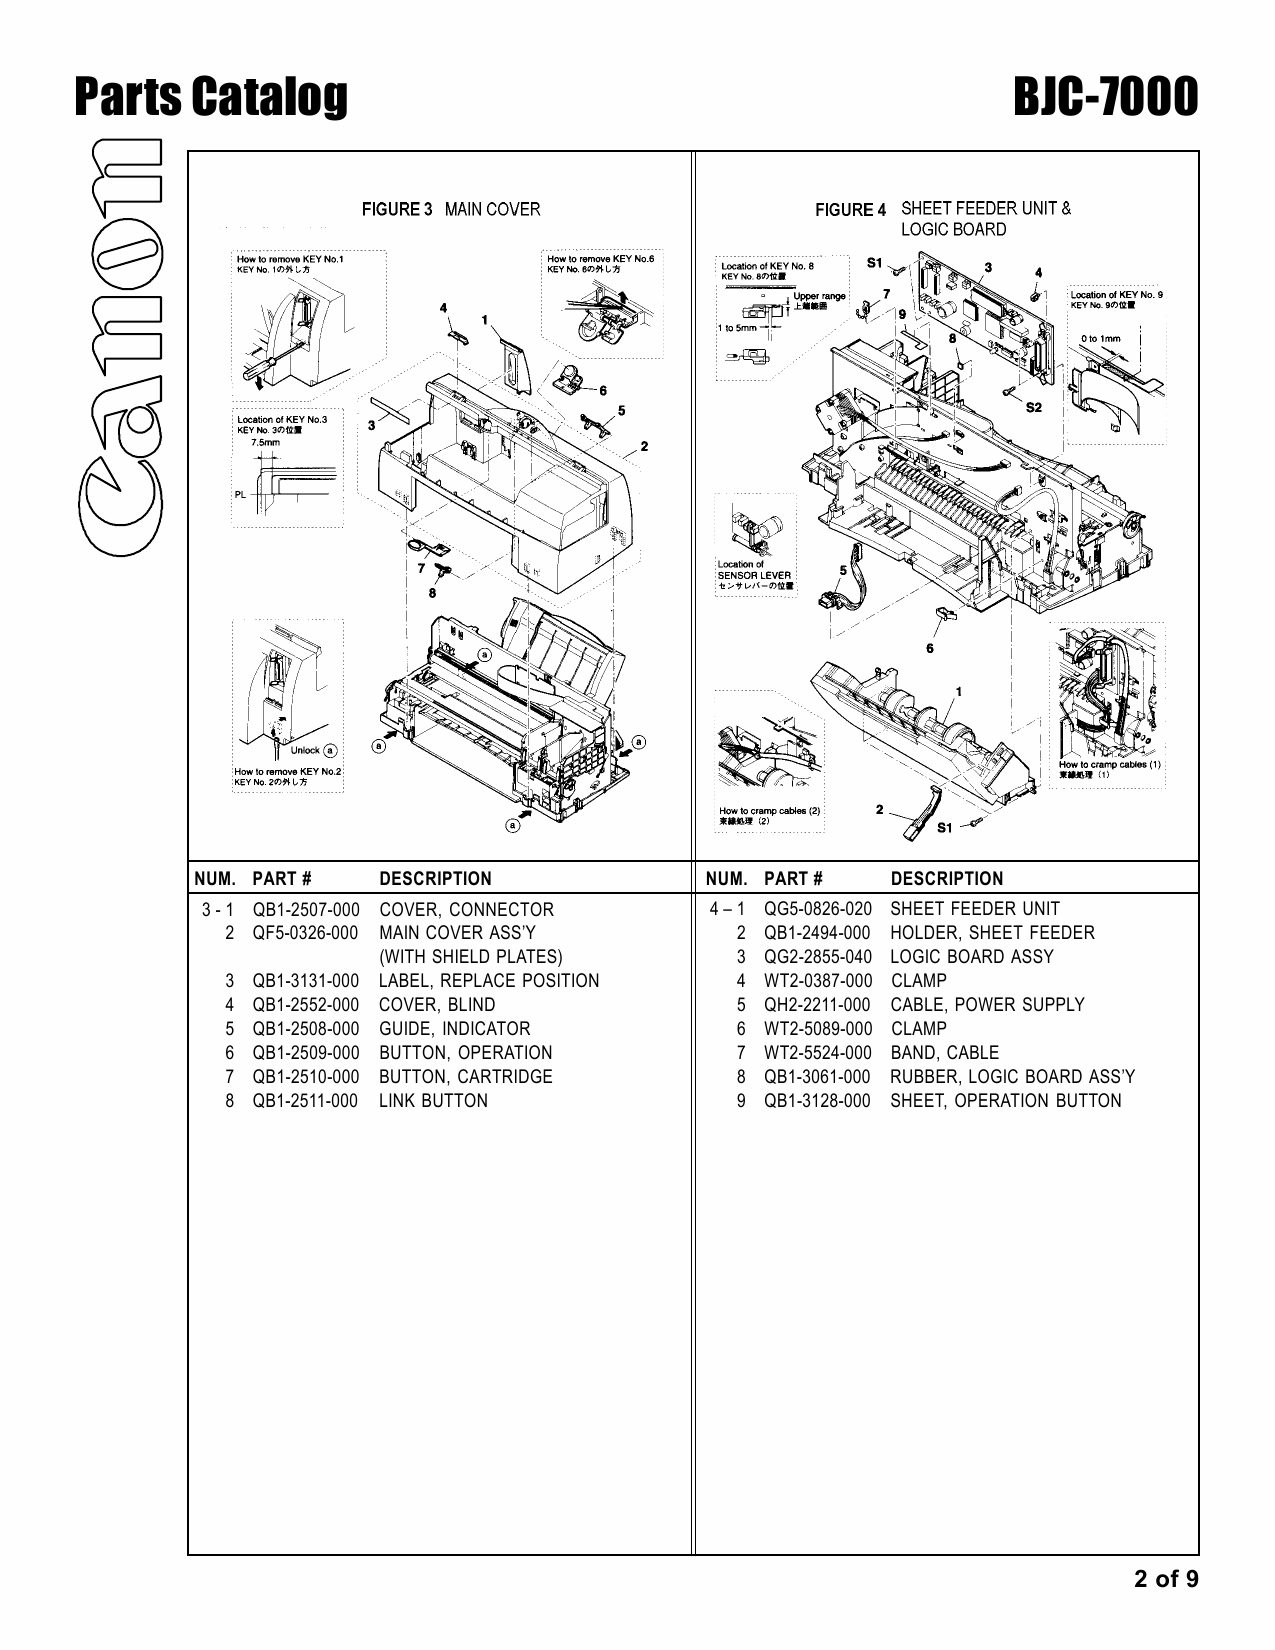 Canon BubbleJet BJC-7000 Parts Catalog Manual-2